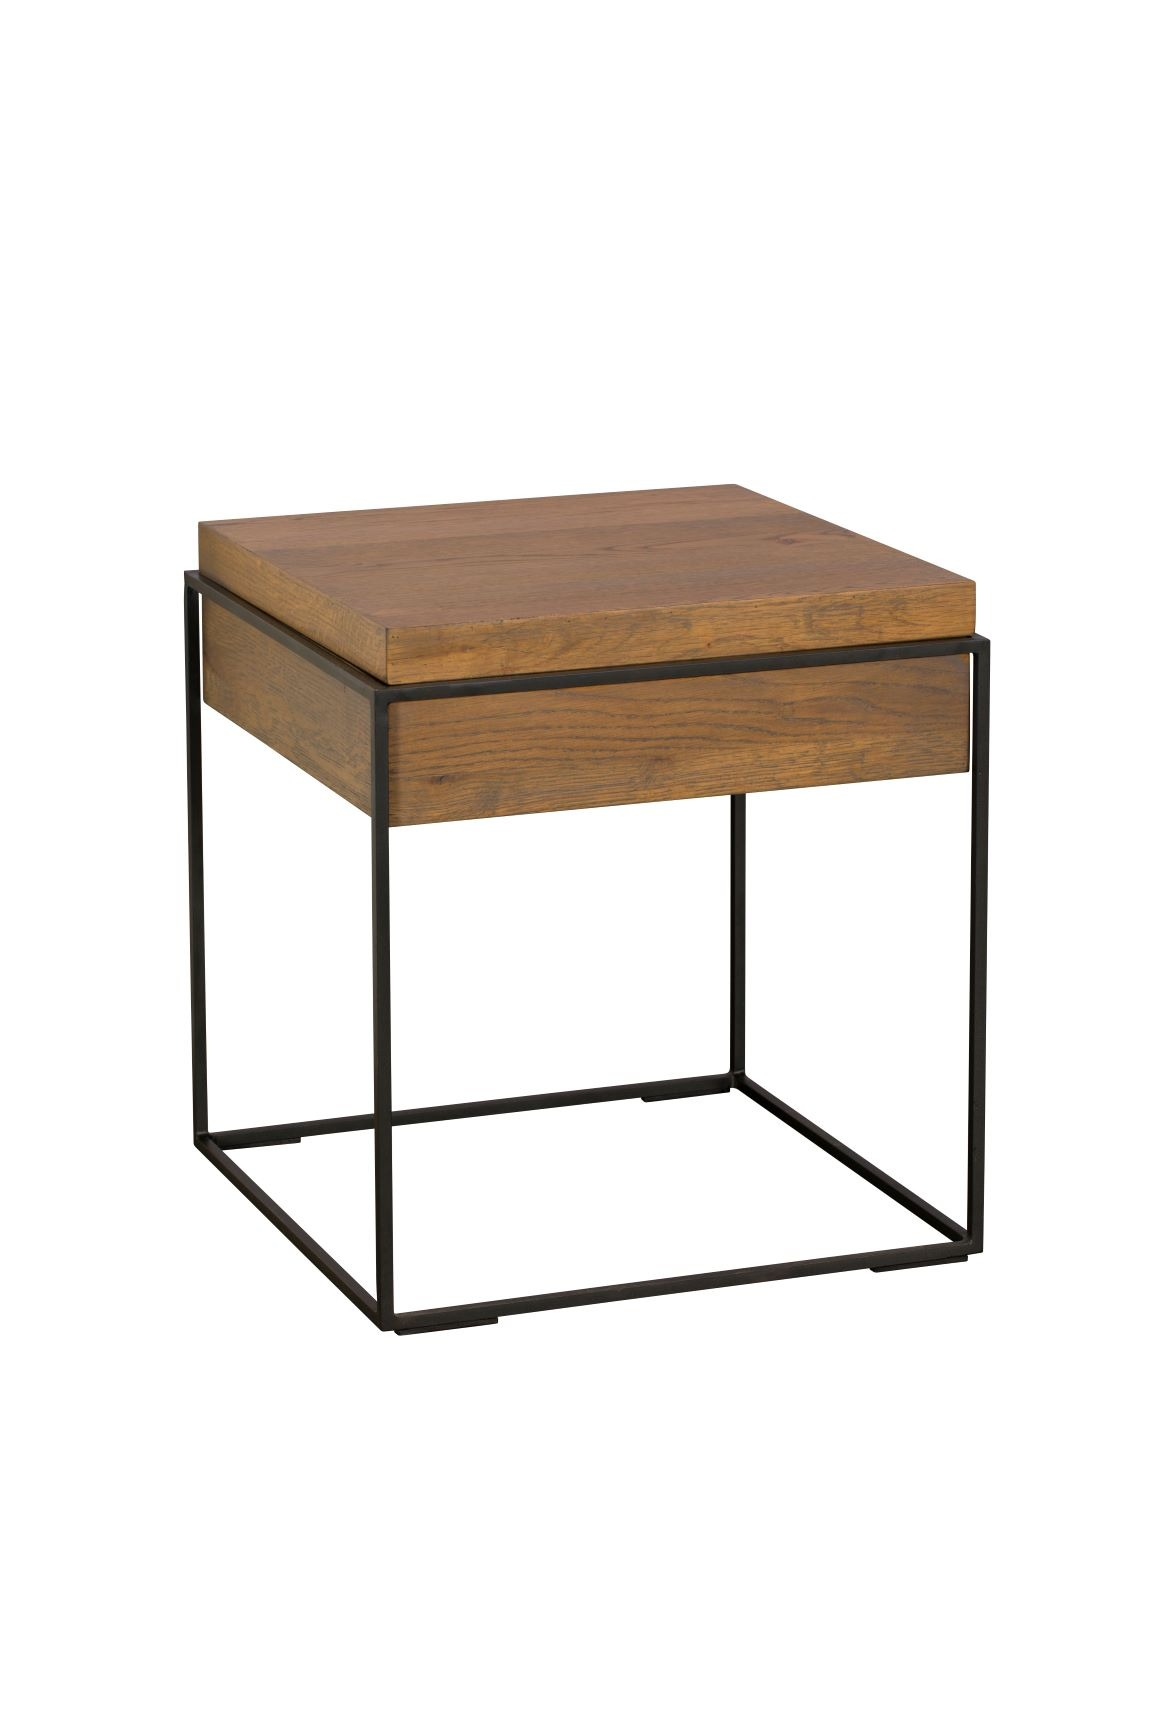 CARTER LAMP TABLE - L47cm x D47cm x H51cm